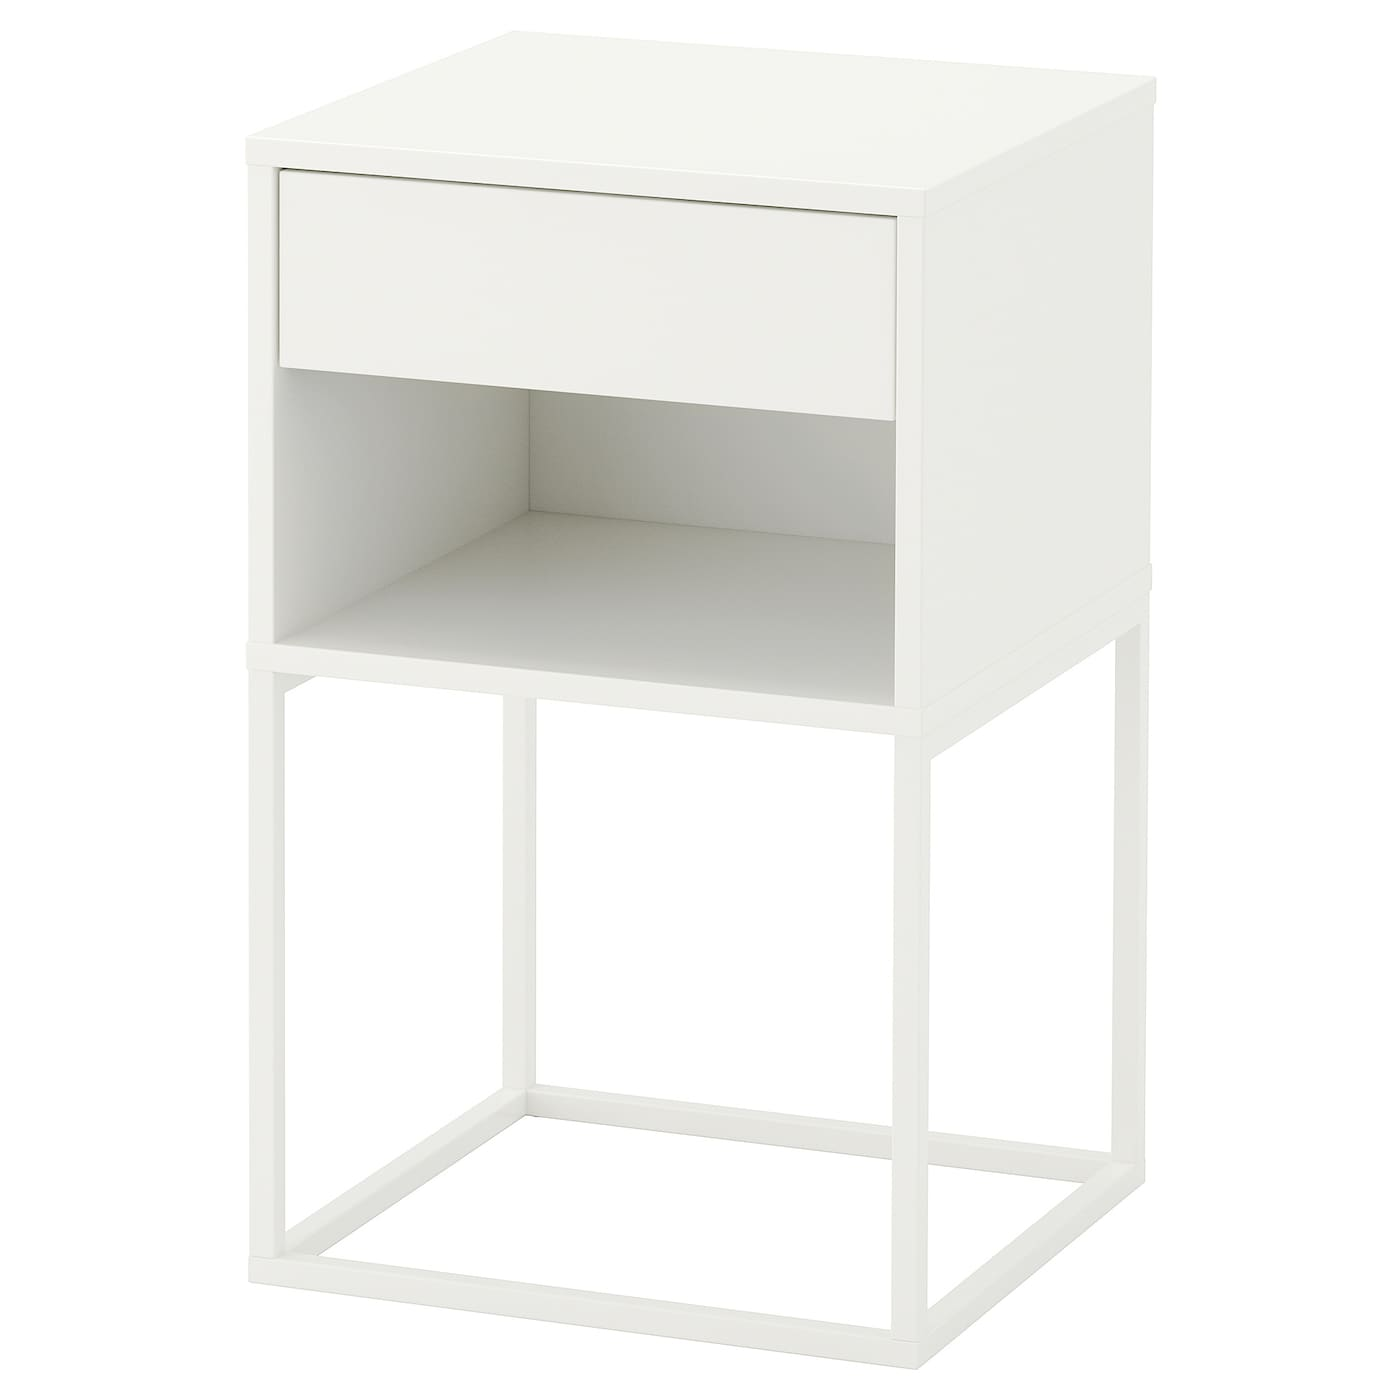 Vikhammer table chevet blanc 40 x 39 cm ikea for Mesillas de noche 30 cm